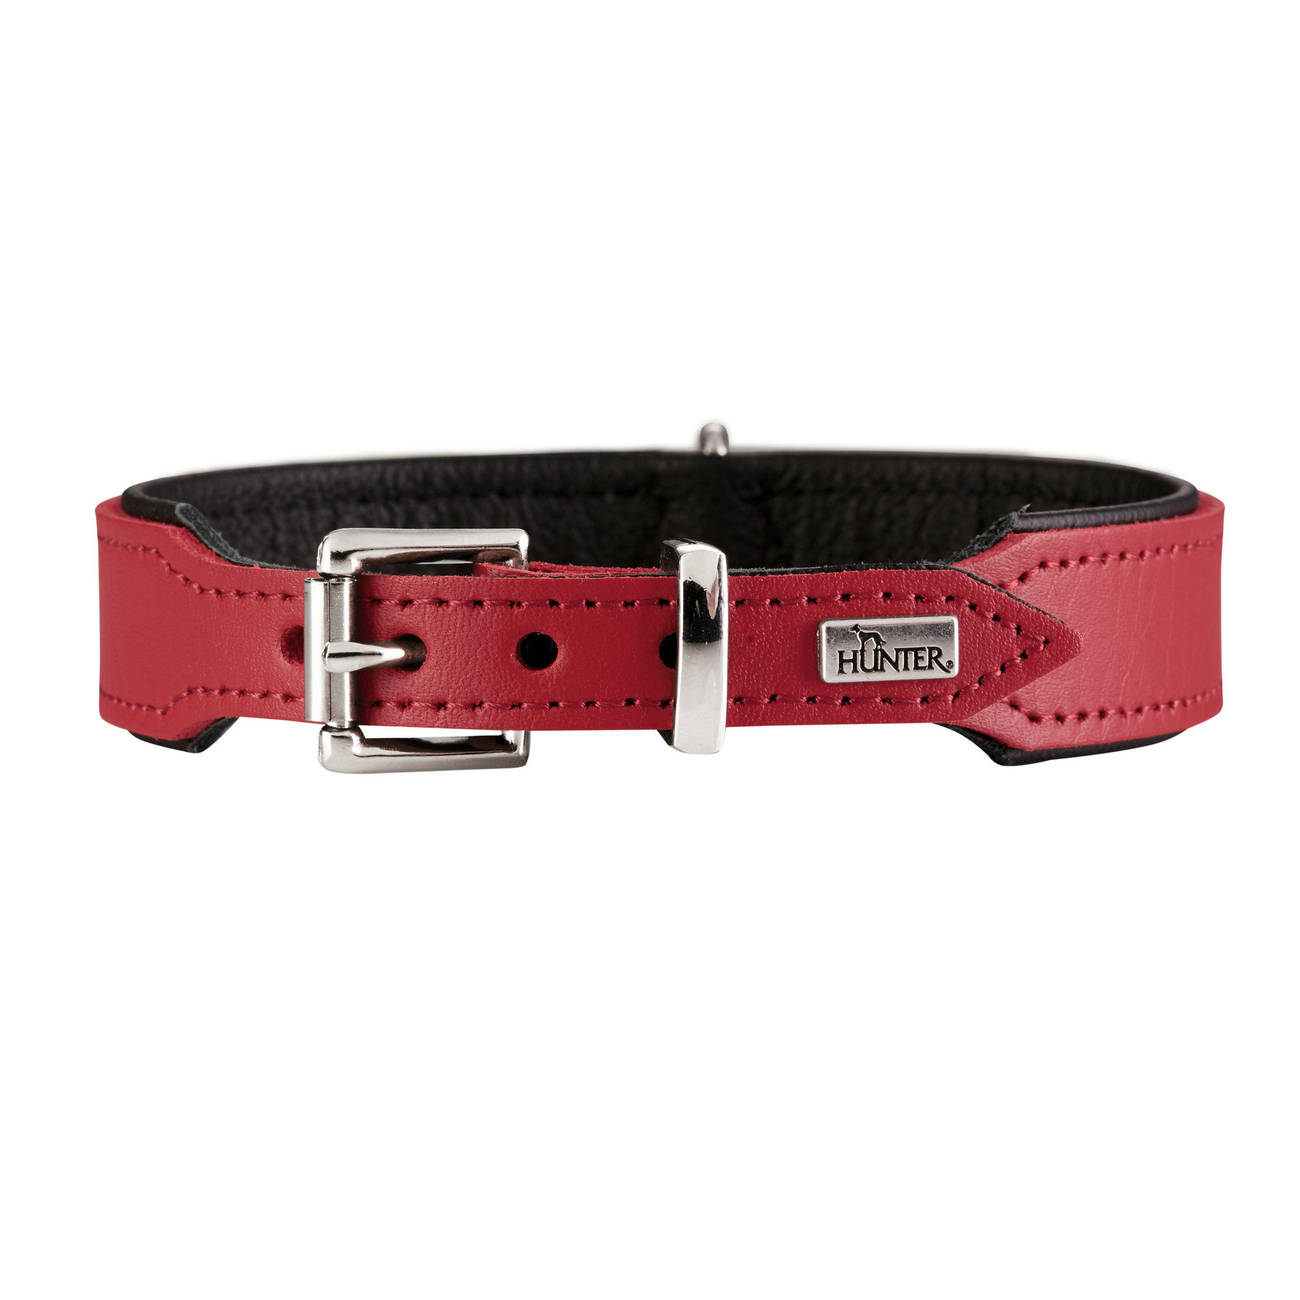 Hunter Hundehalsband Basic 46951, Bild 4